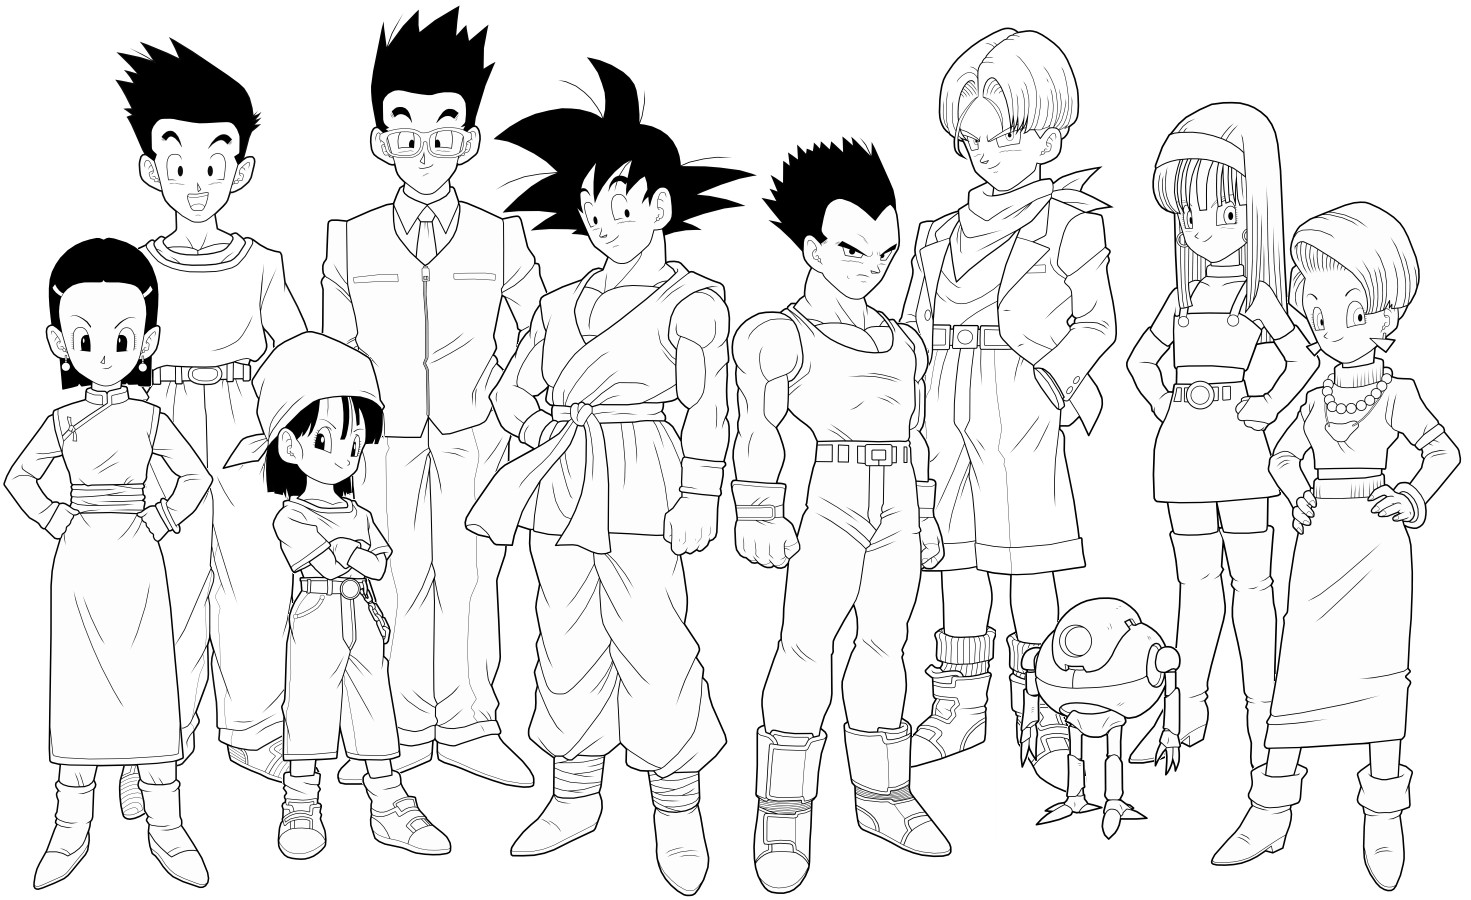 dragonball gt coloring book pages - photo#24